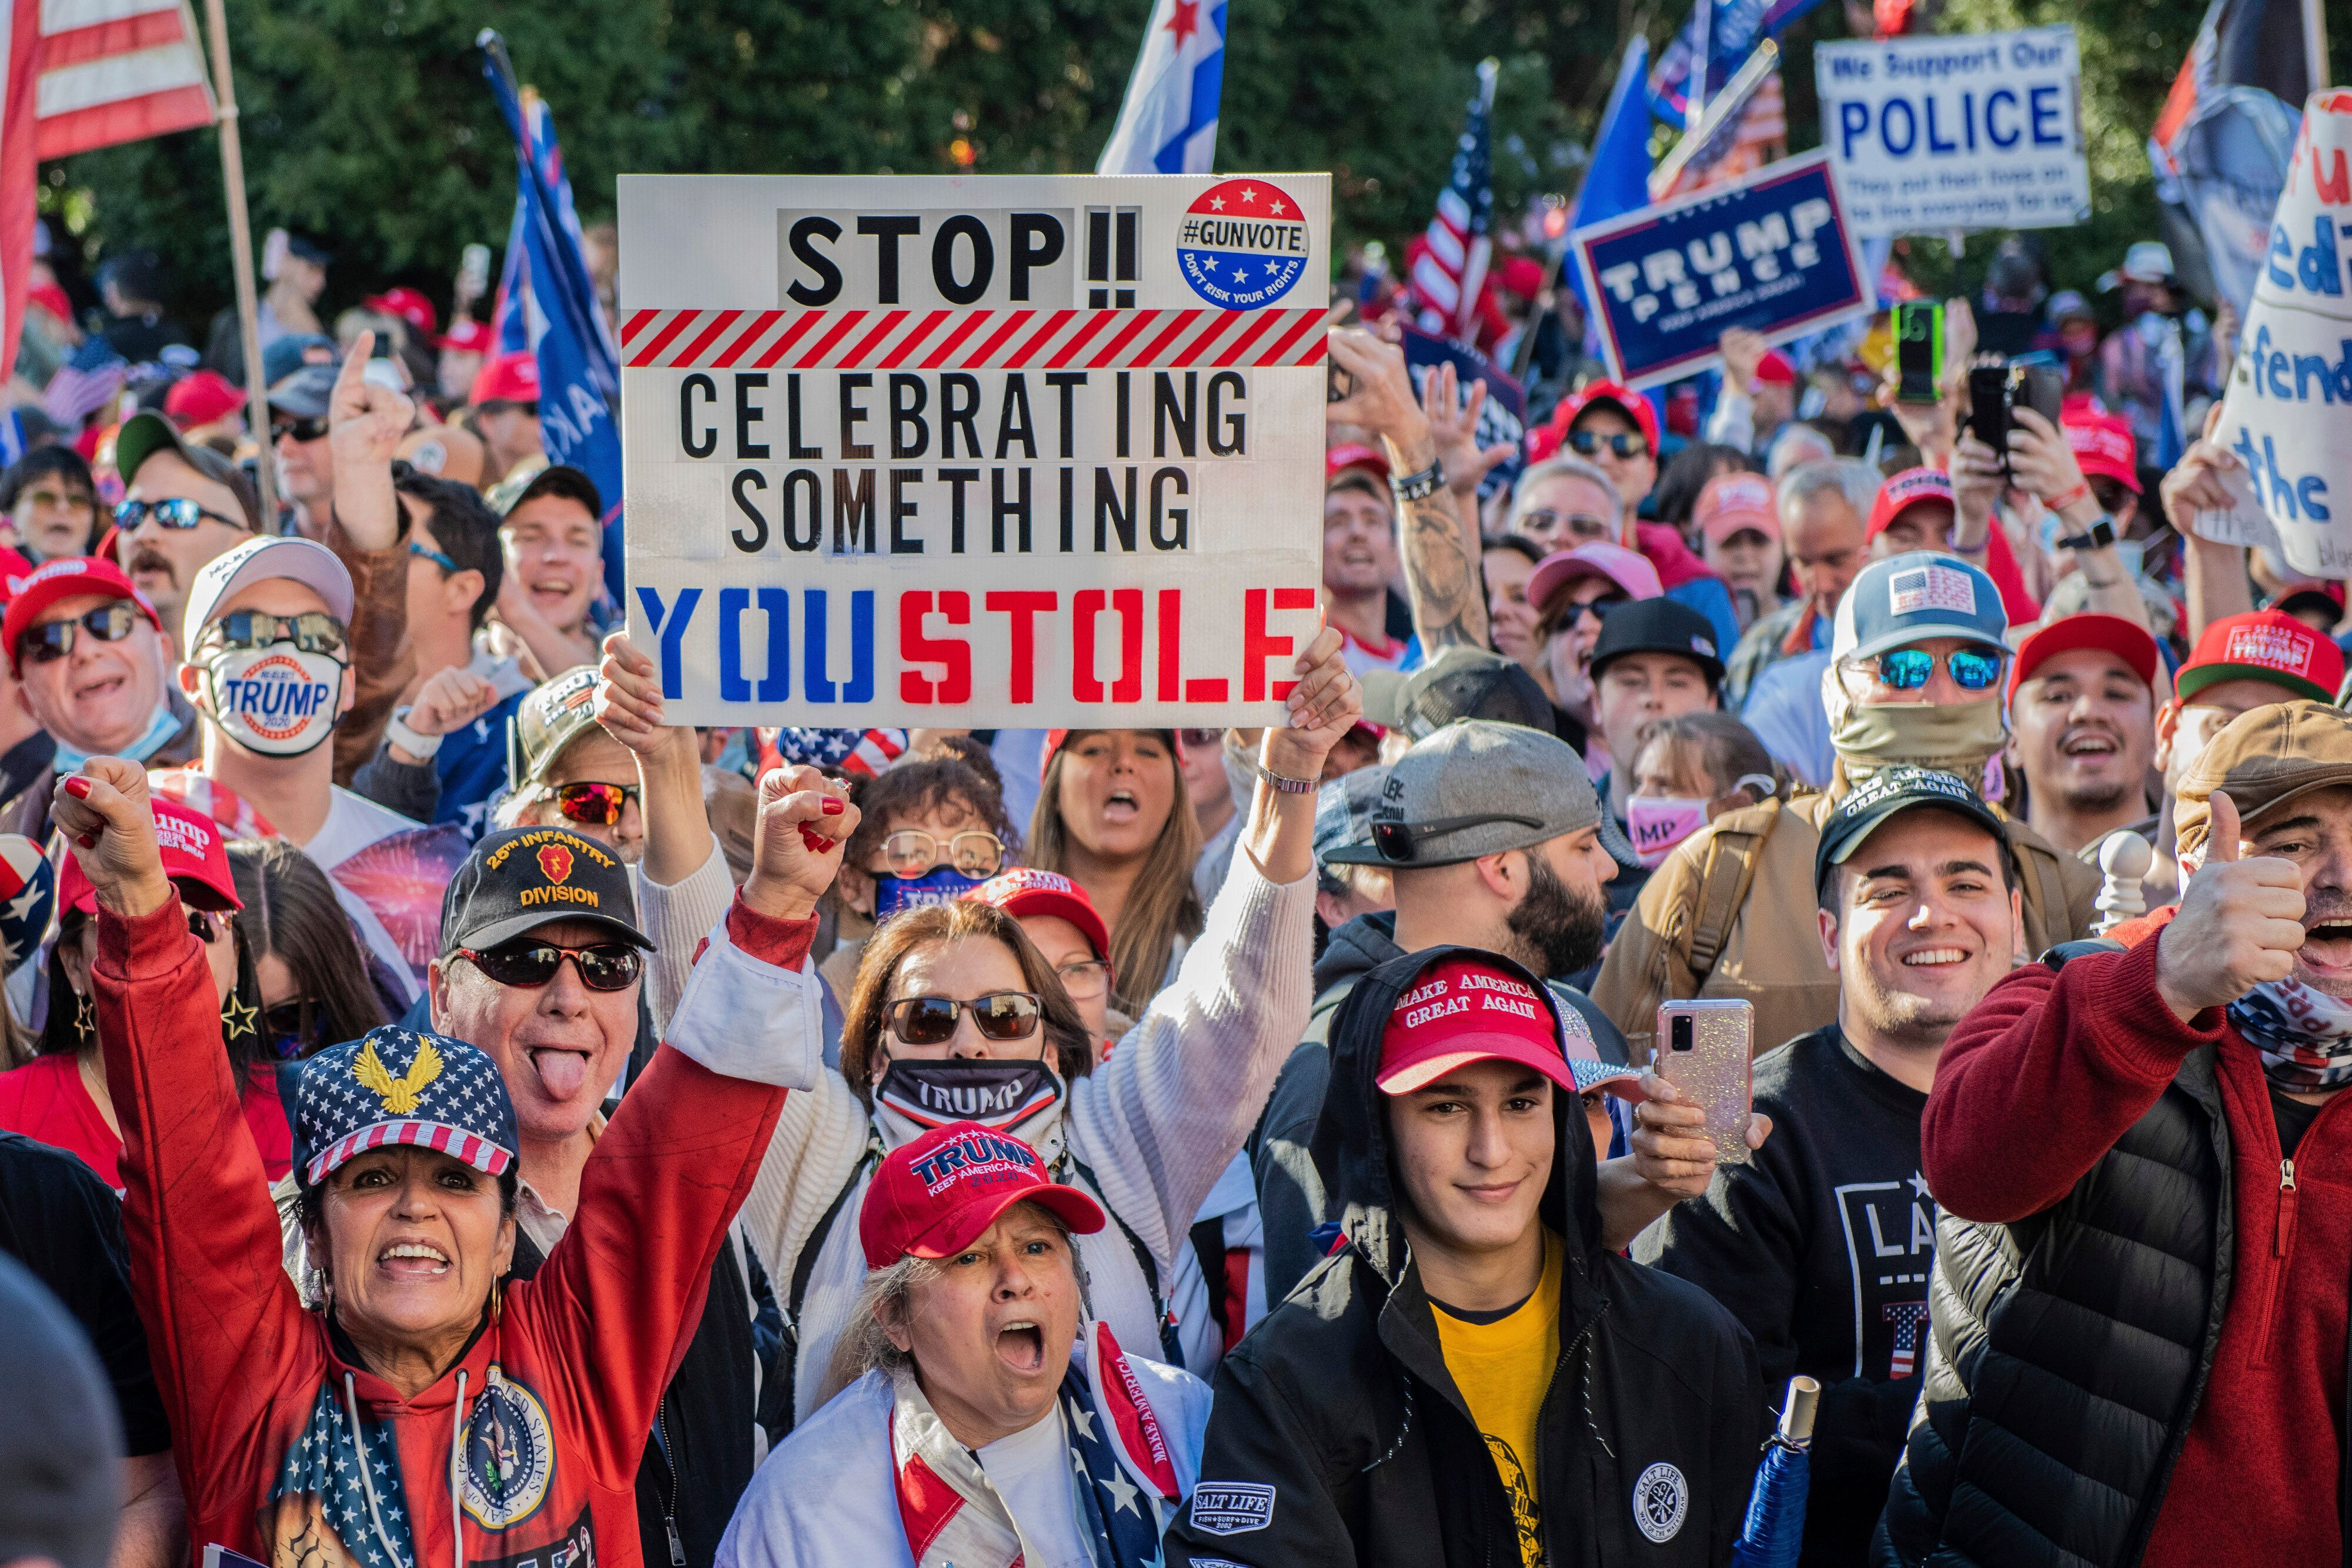 Across the country, Trump supporters are rallying against supposed voter fraud. What begins as a tweet gets amplified across